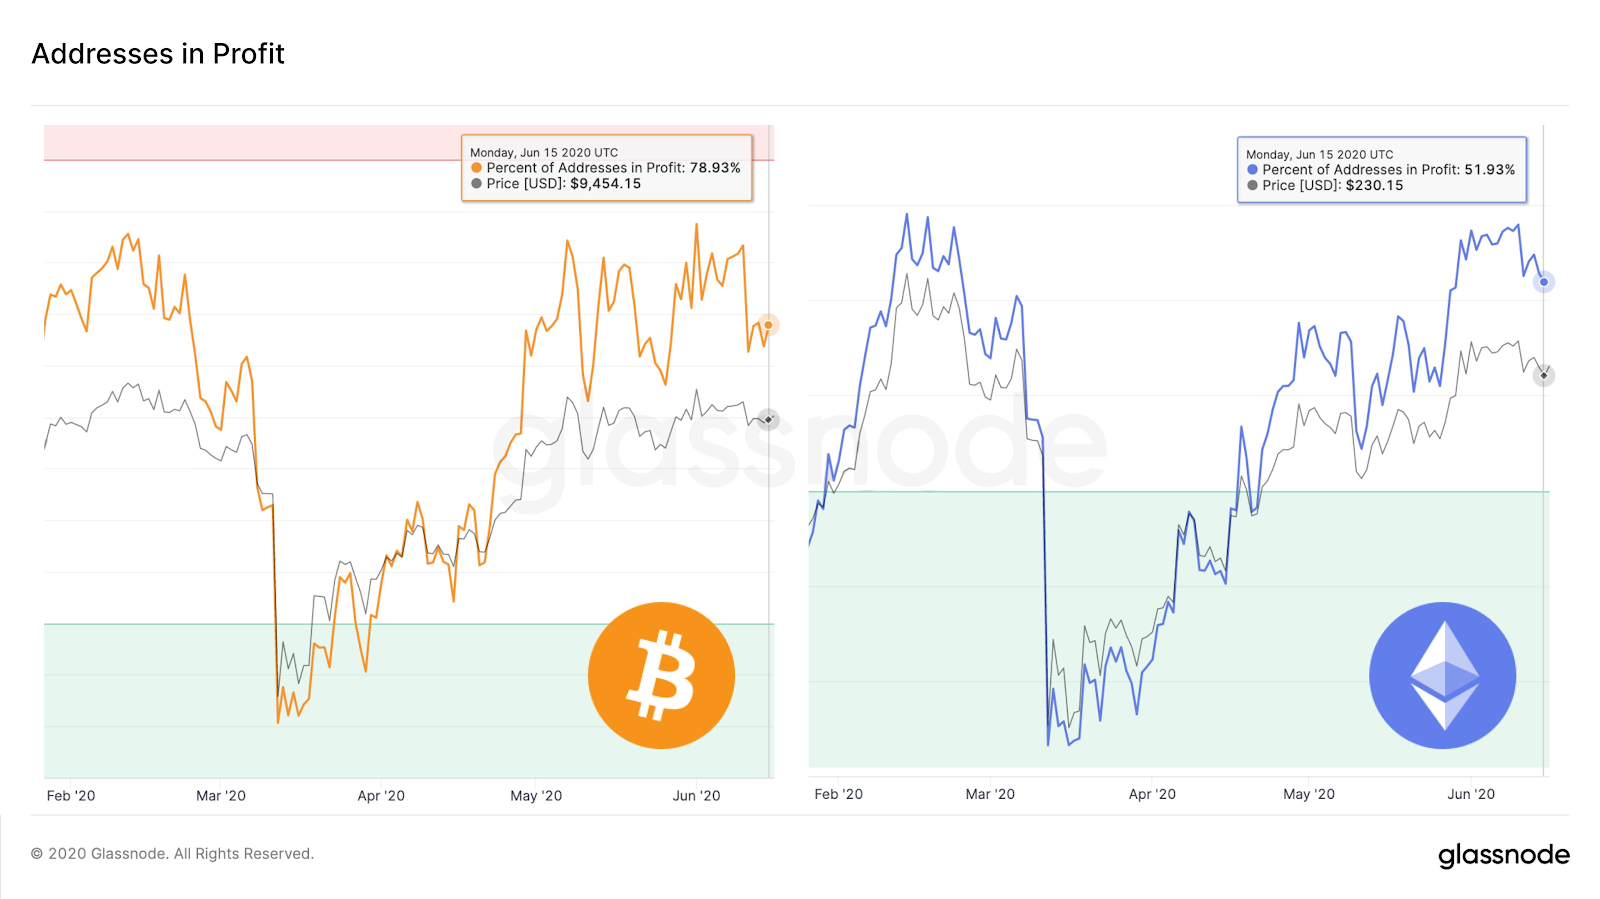 Bitcoin and Ether addresses in profit